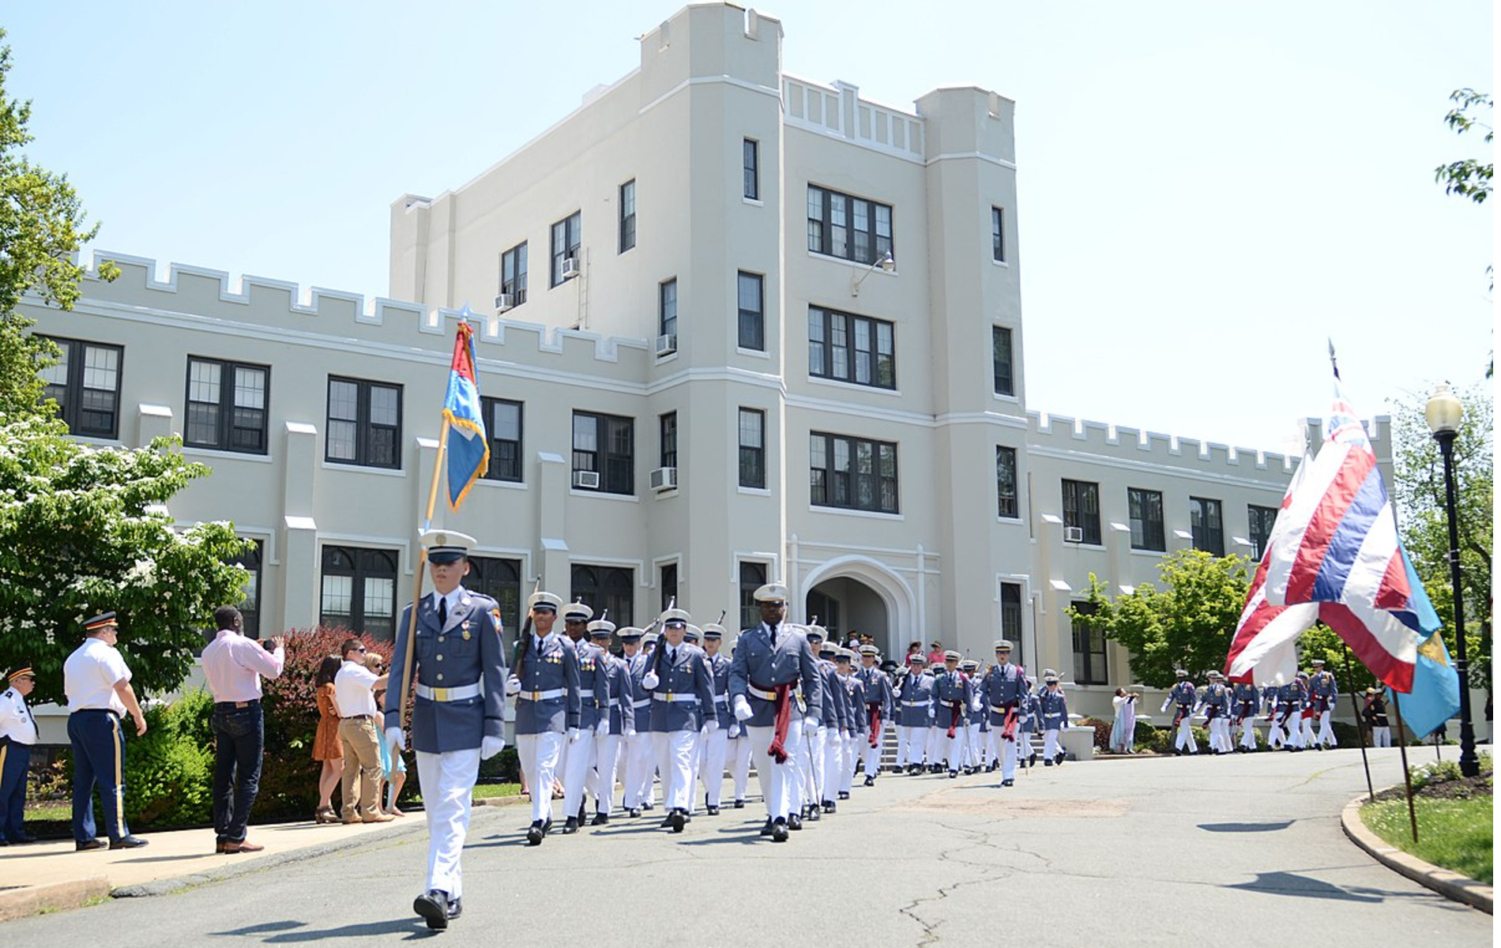 Cadets at Fork Union Military Academy march in front of the white building. They are marching for the Mother's Day Parade in May 2018. (Photo obtained under creative commons license)